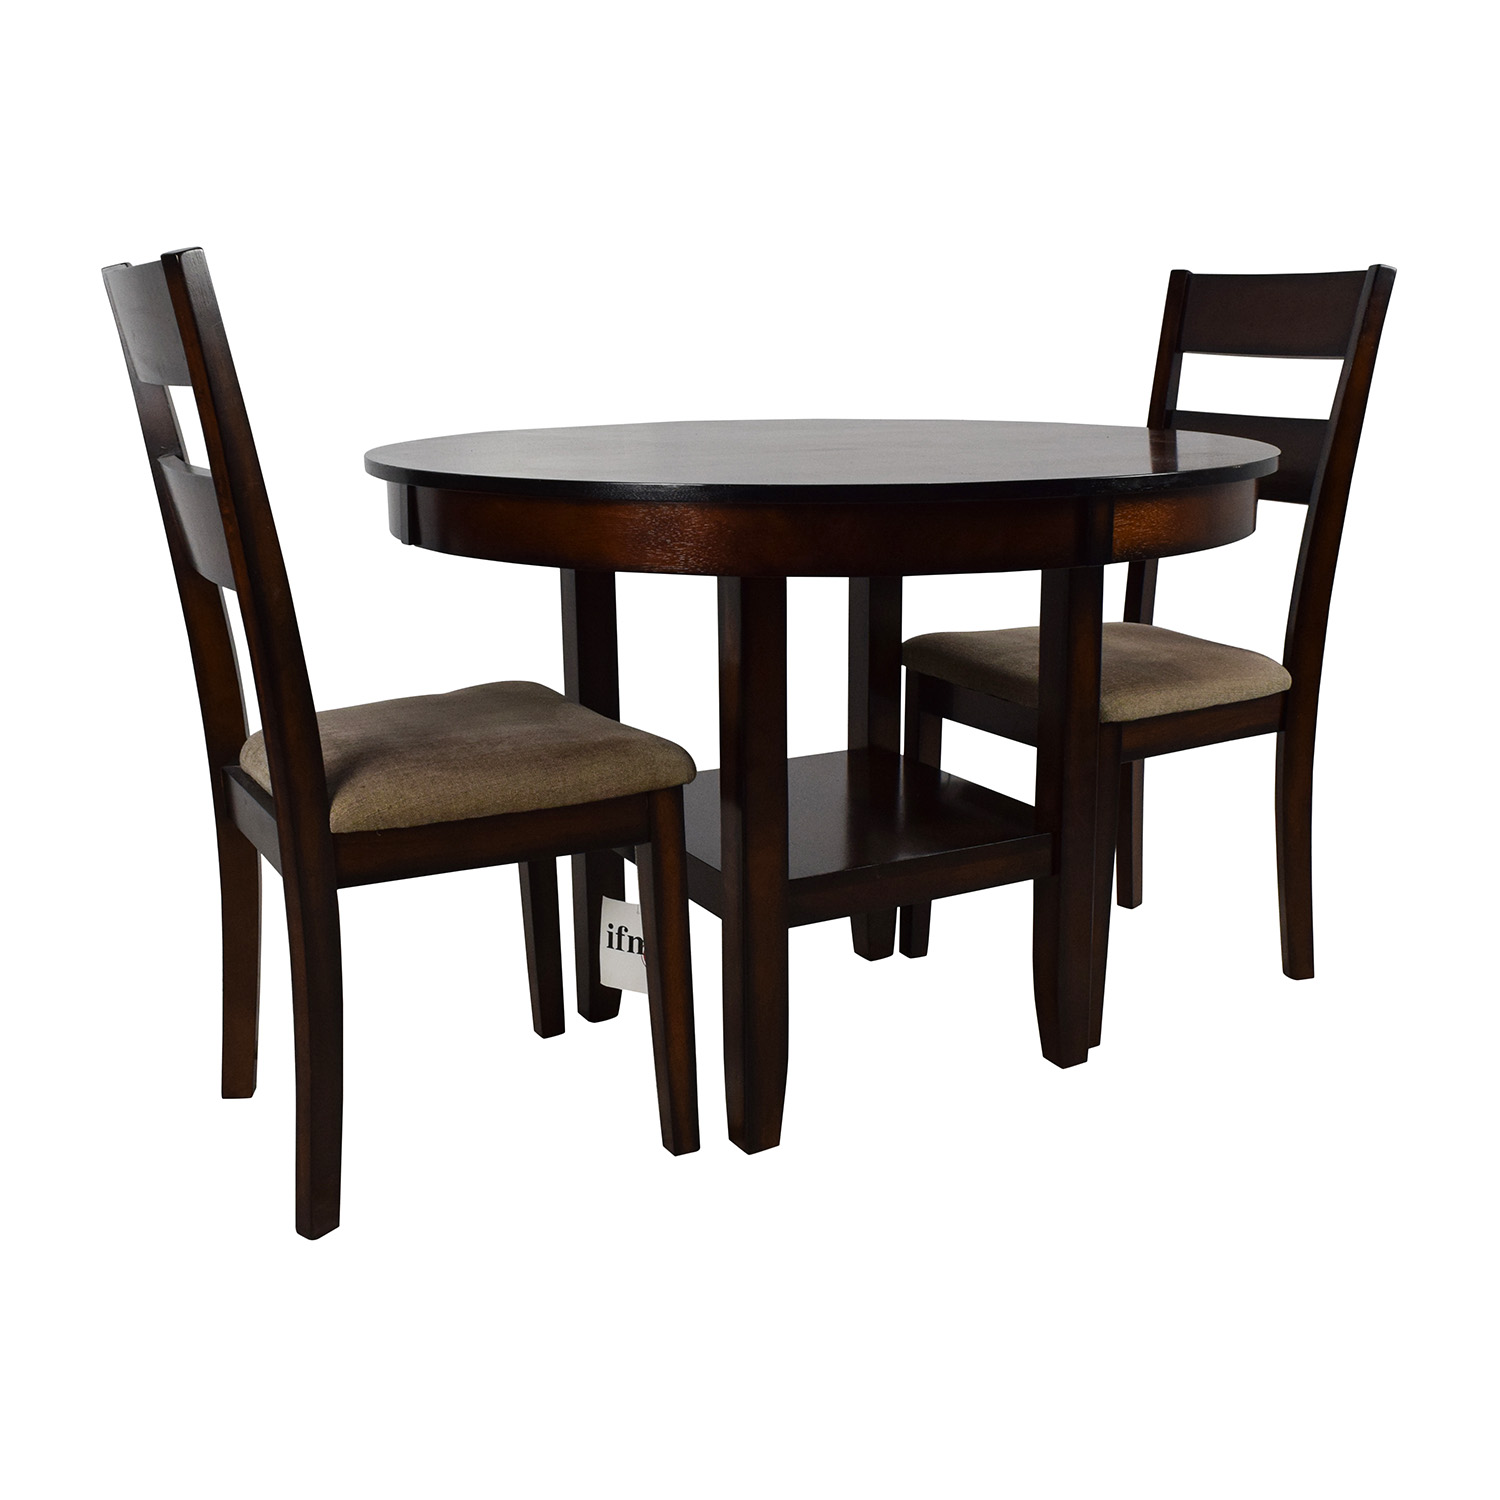 85 off macy 39 s macy 39 s branton 3 piece dining room for 3 piece dining room table